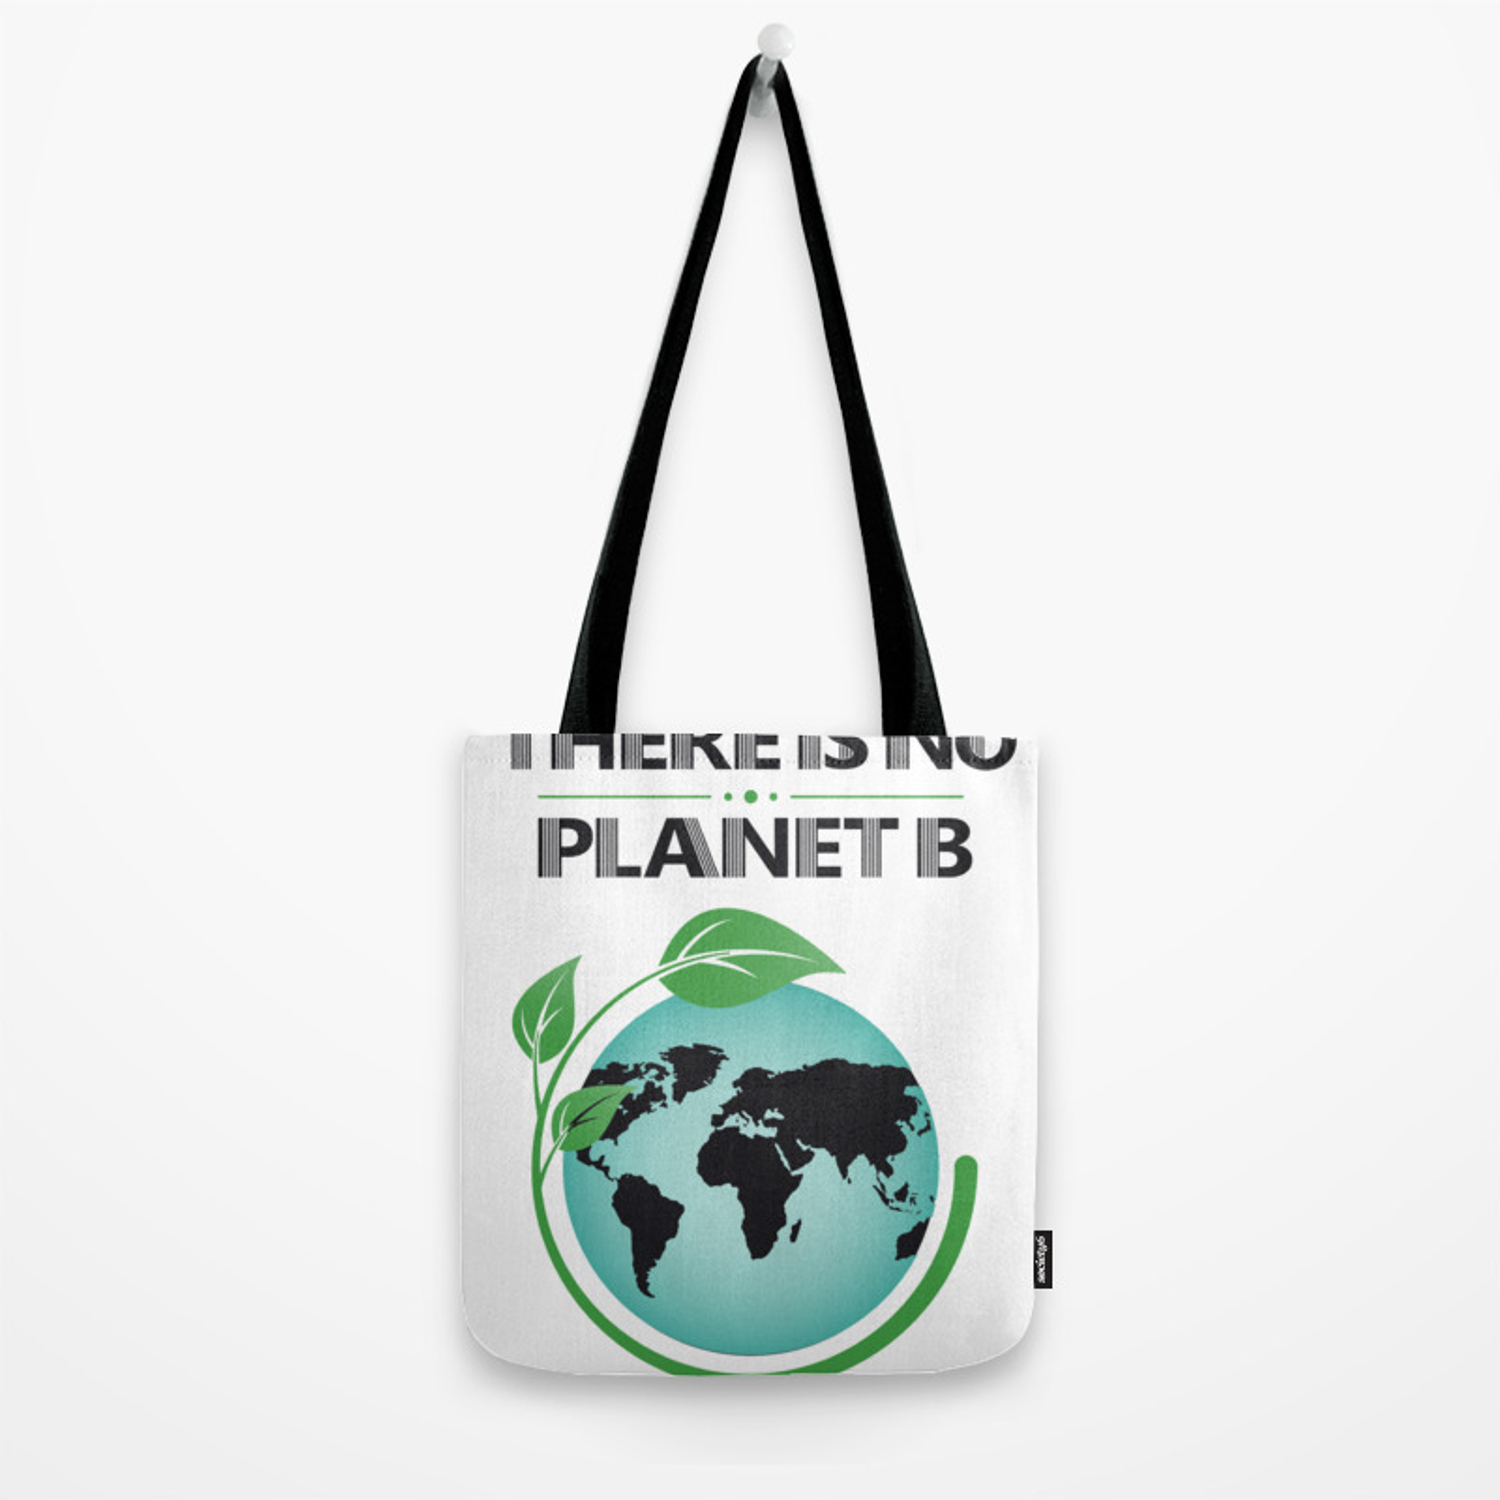 Is No By Planet Day There Earth Environmental Tote B Awareness Bag hQsrdt